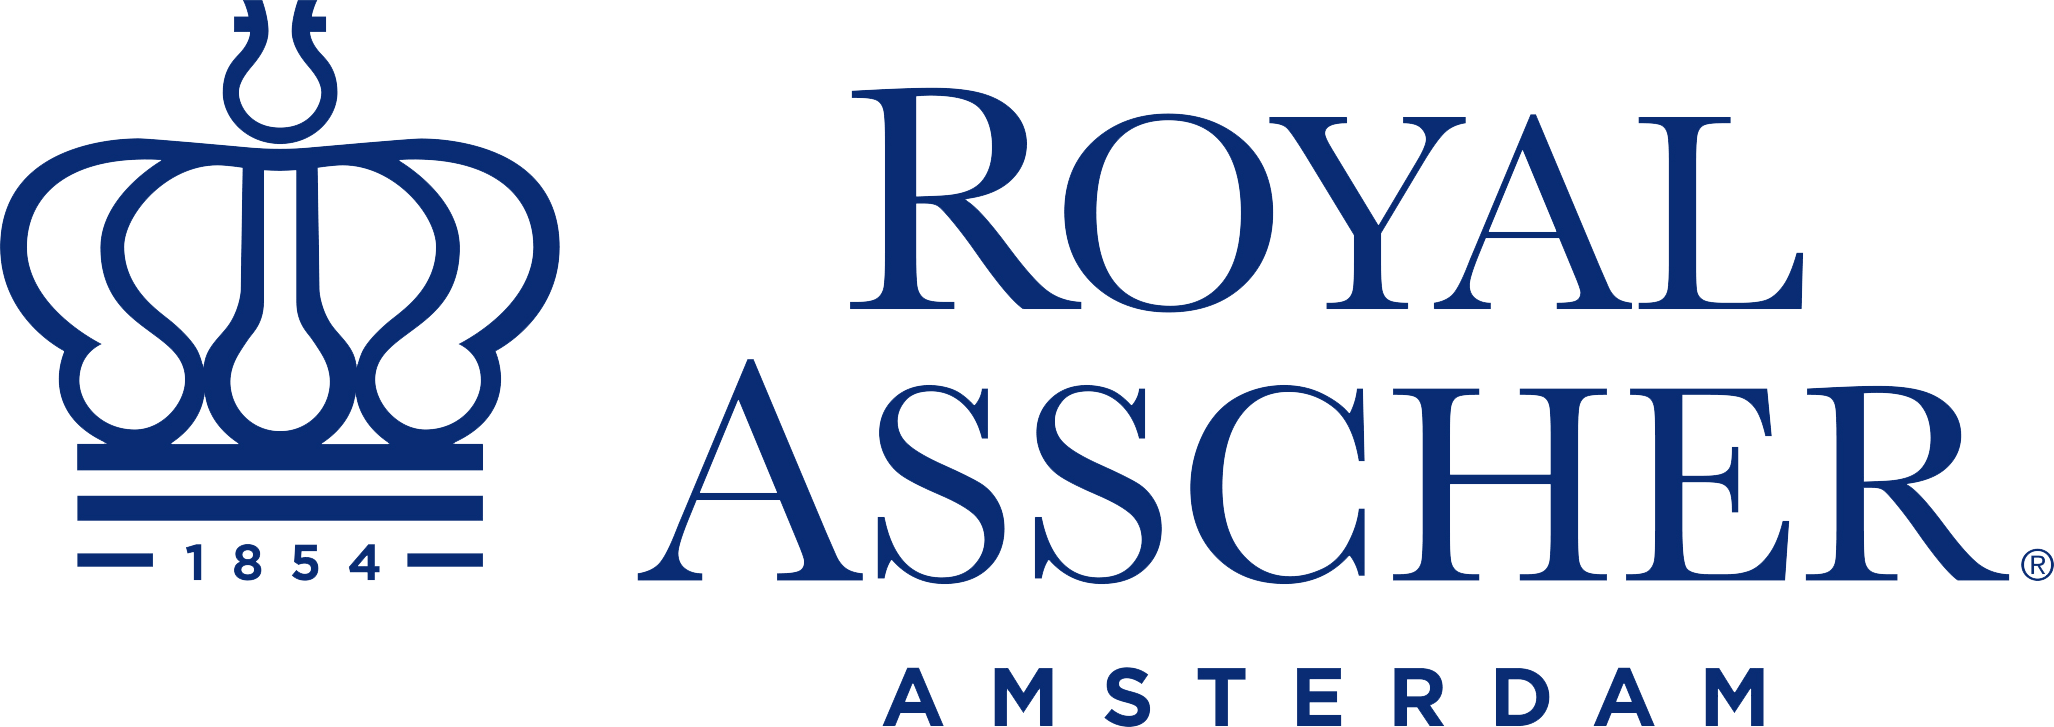 Royal Asscher Logo